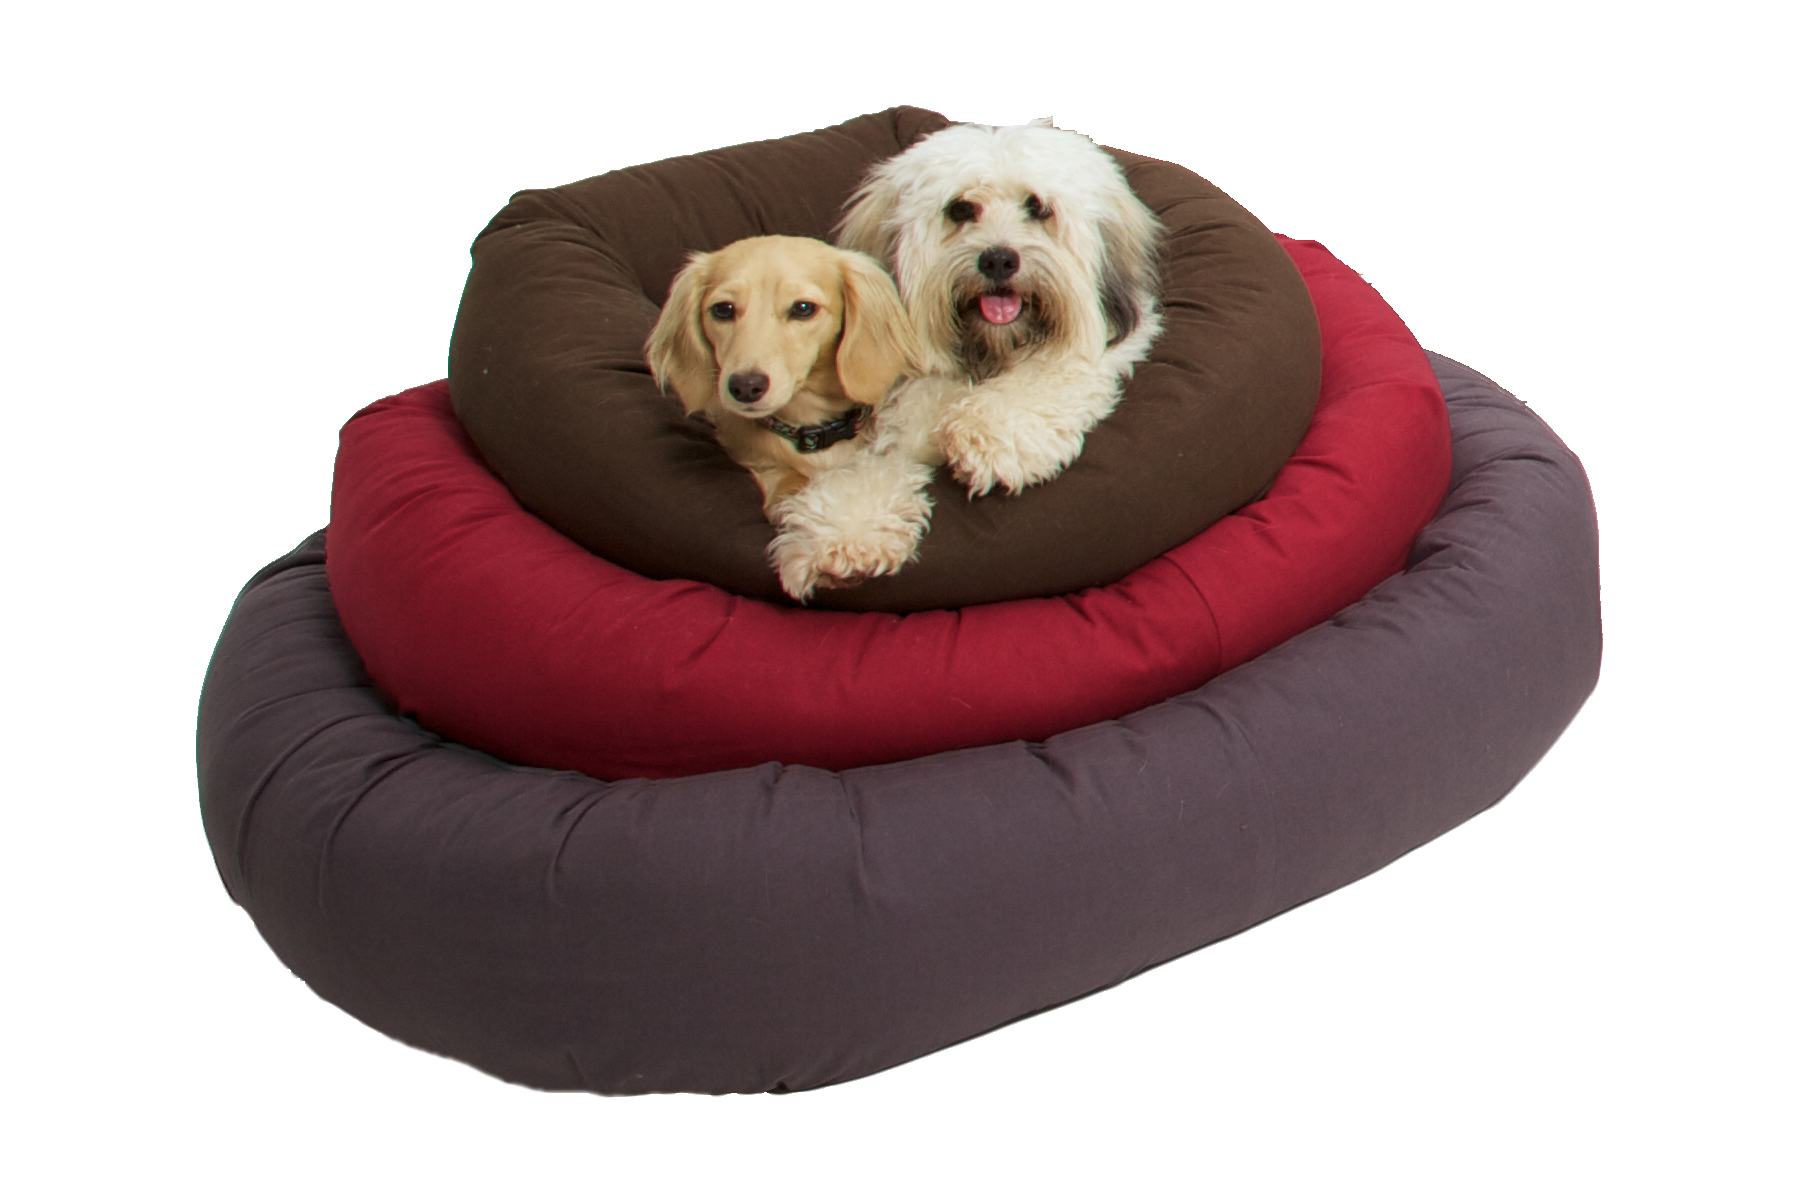 DGS Donut Repelz-It dog bed